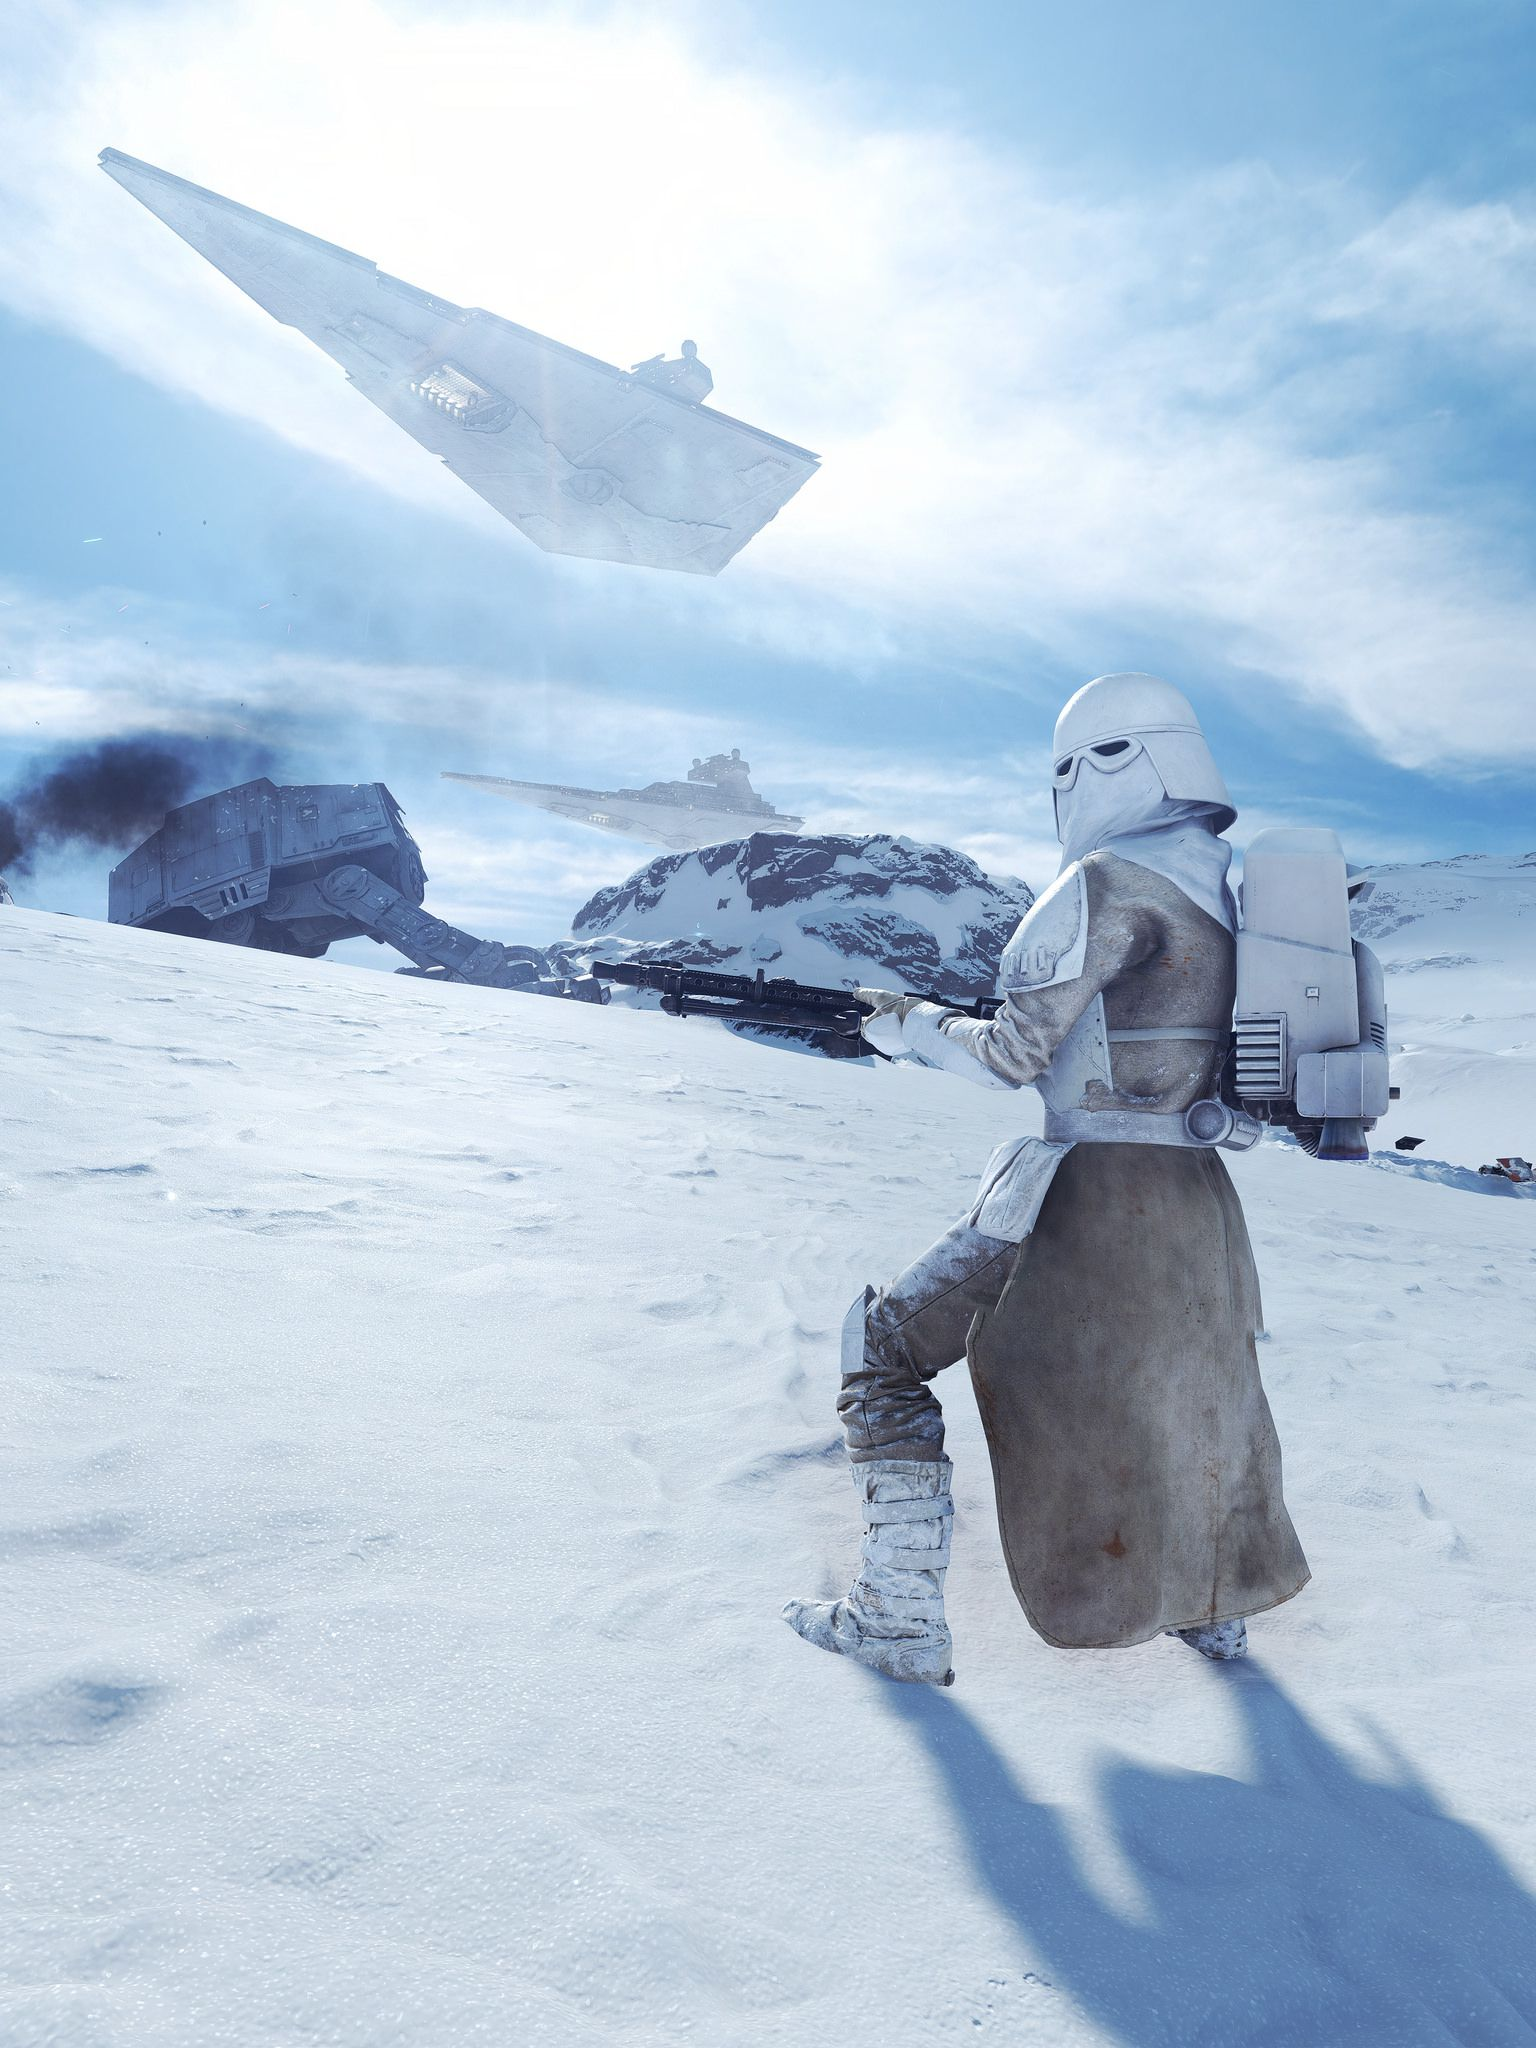 Fire Hd Wallpapers 1080p Even A Nerf Herder Would Gawk At These Ultra Hd Star Wars